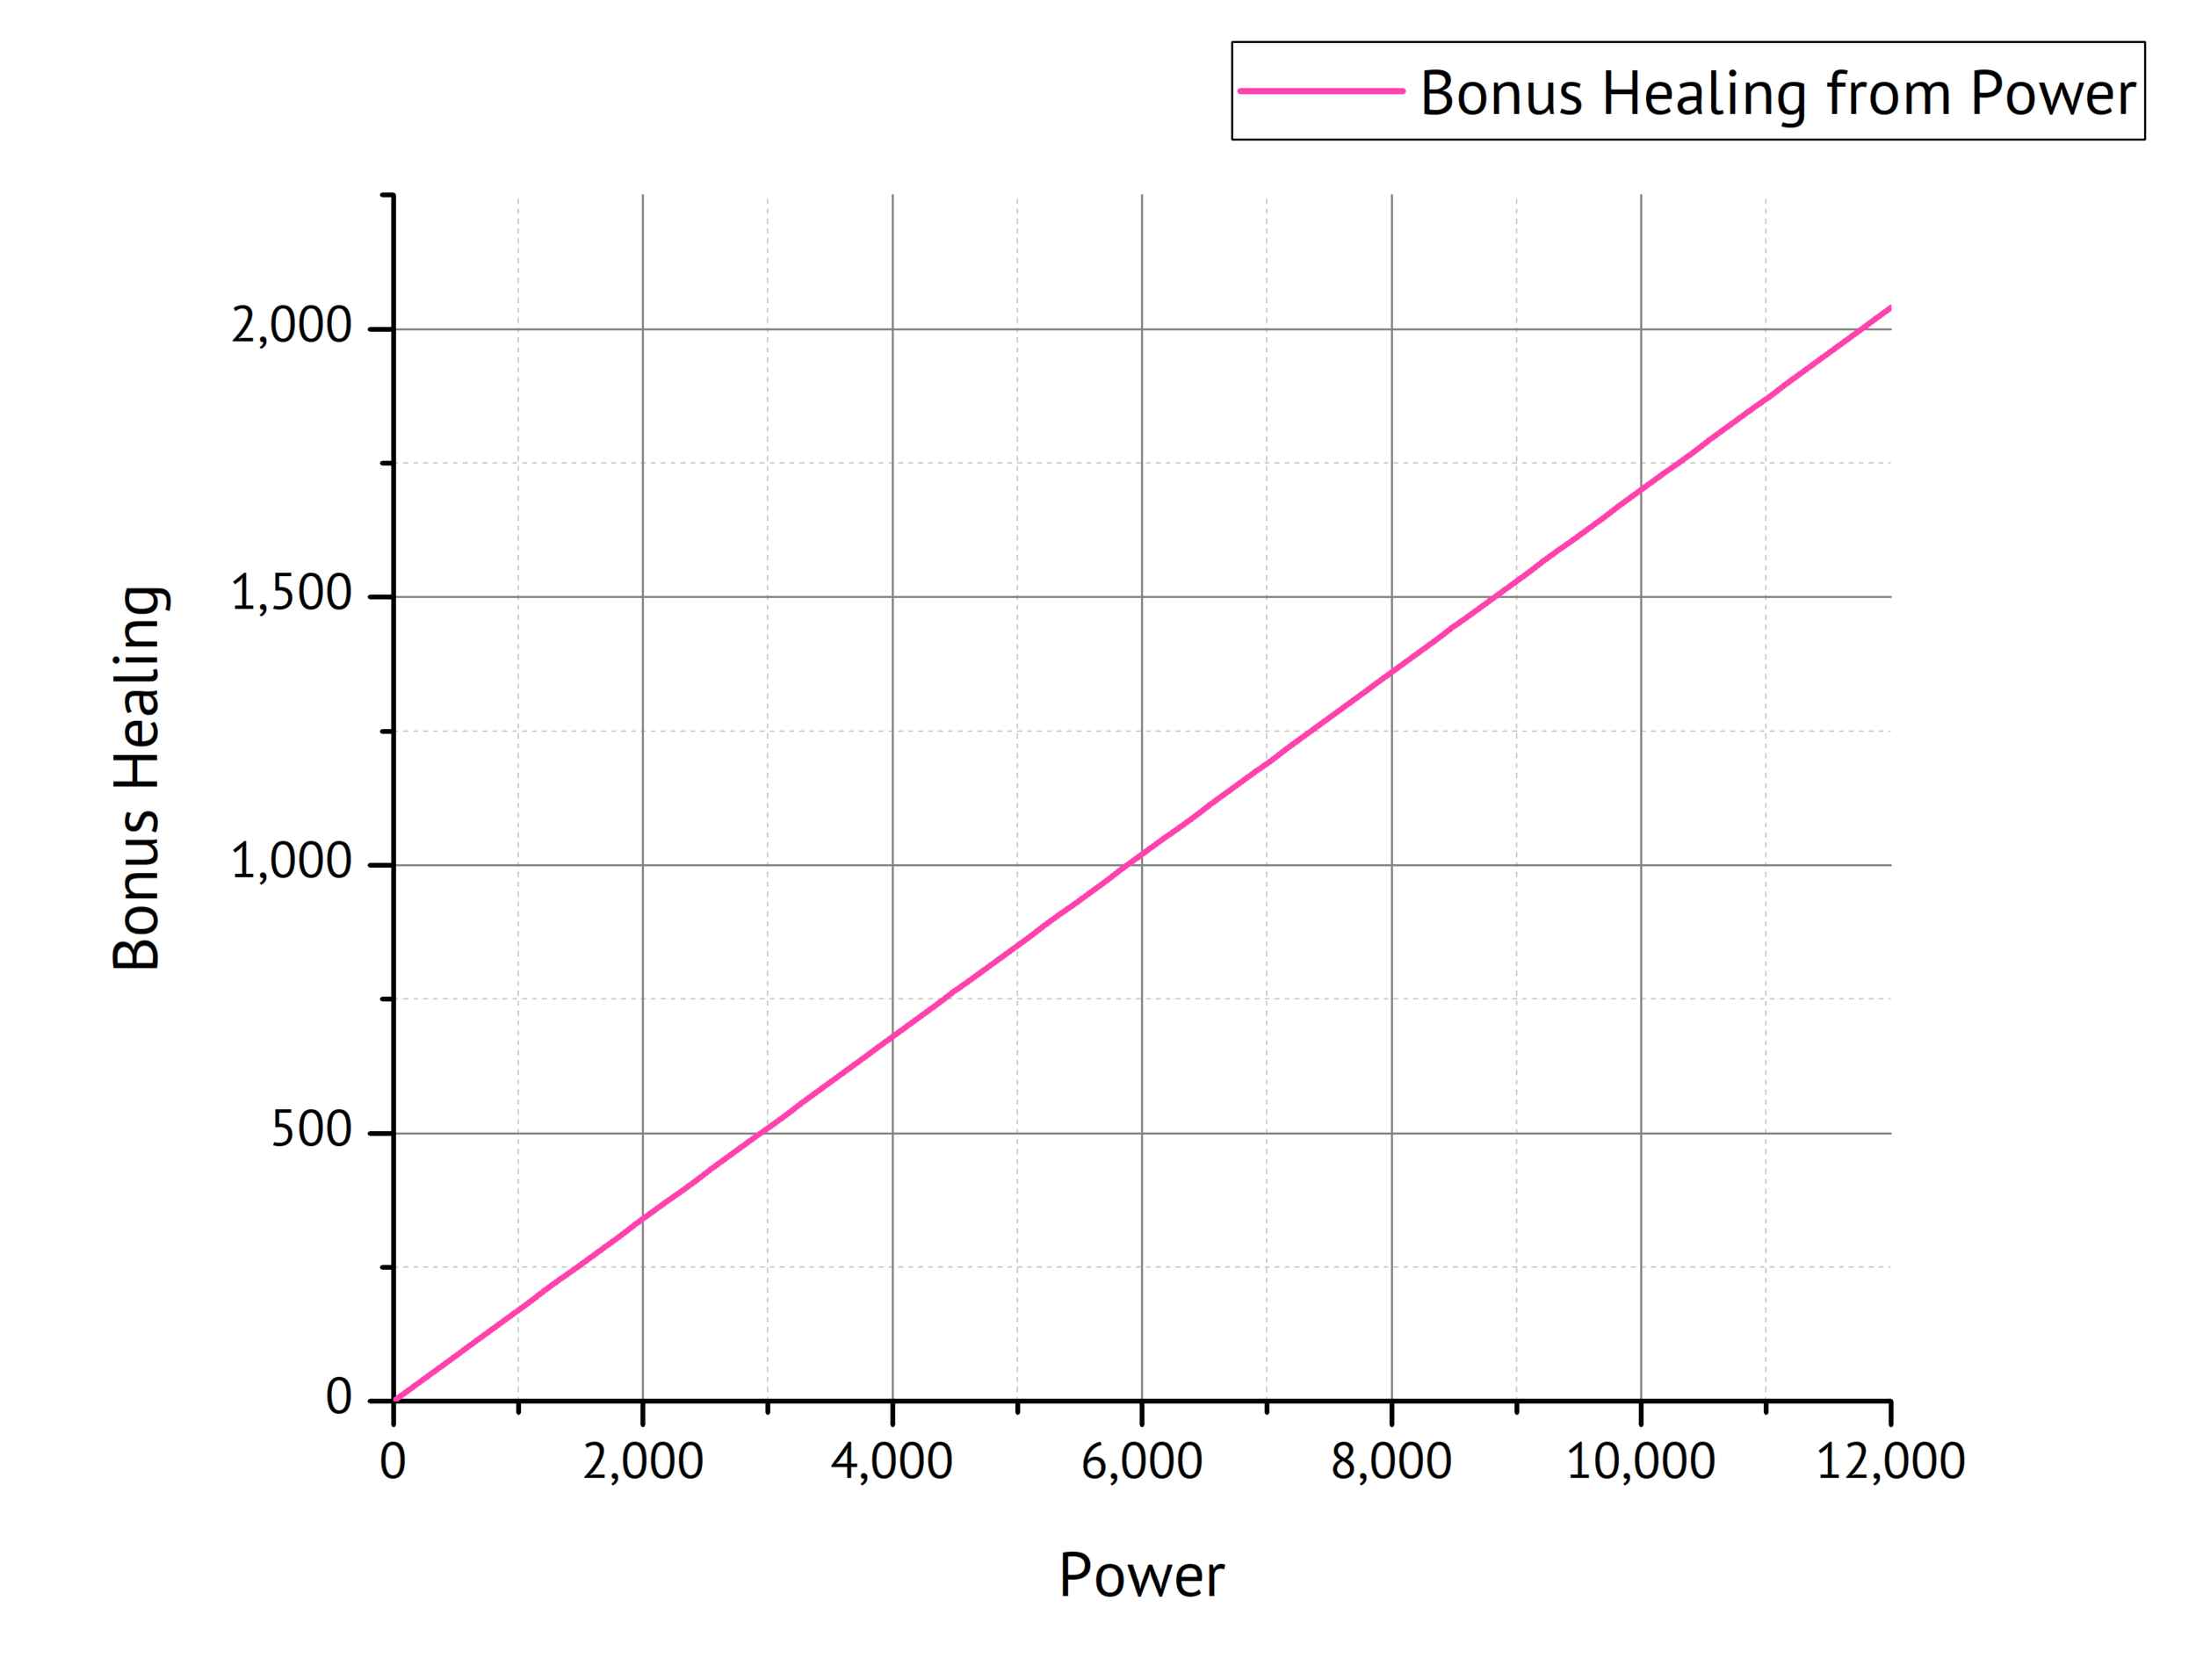 Fig. 6: Bonus Healing as a function of Power.